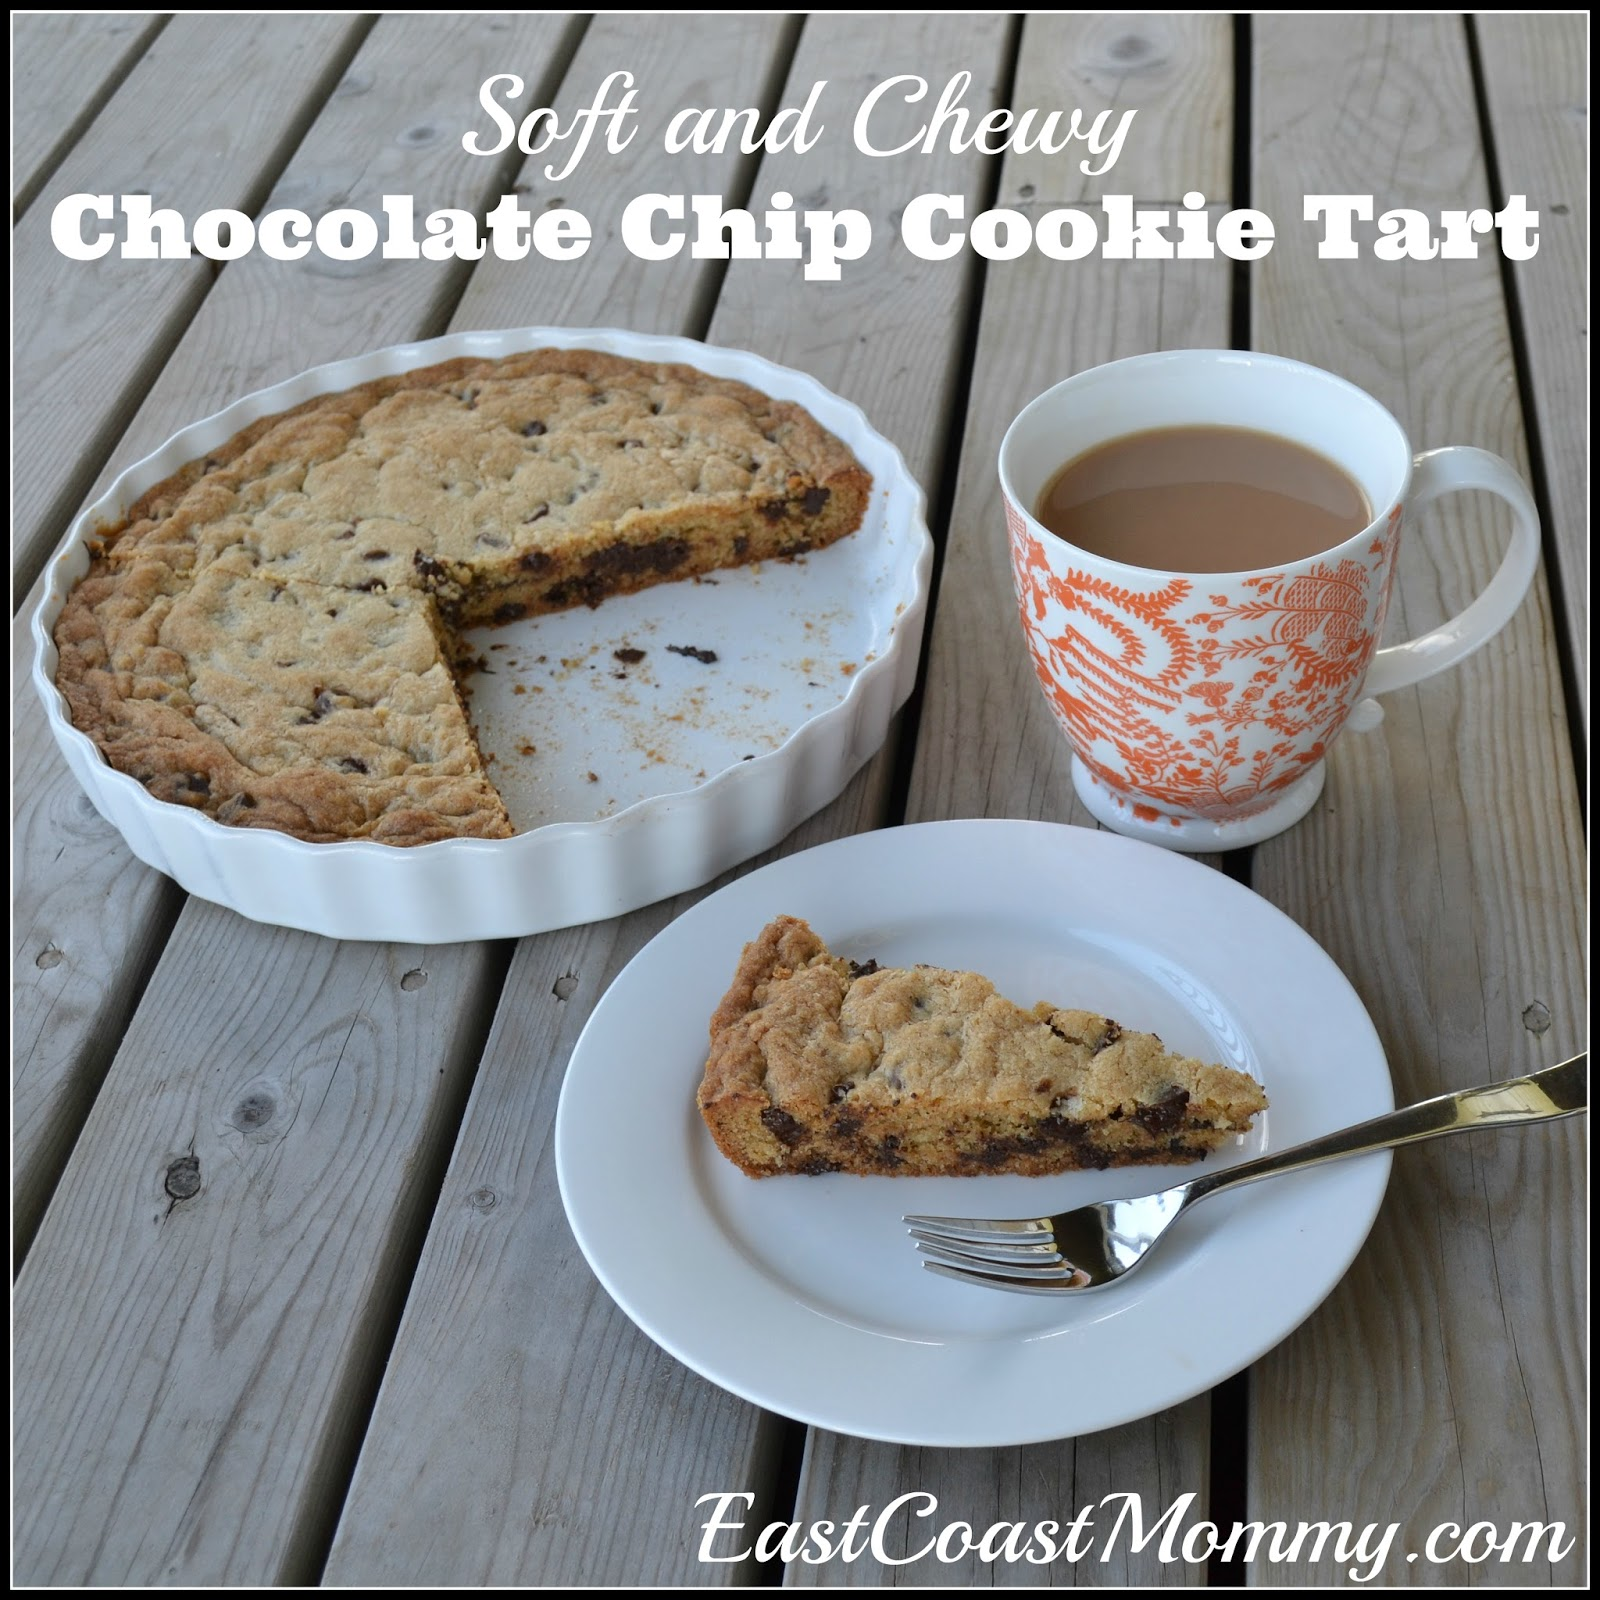 East Coast Mommy: Soft and Chewy Chocolate Chip Cookie Tart